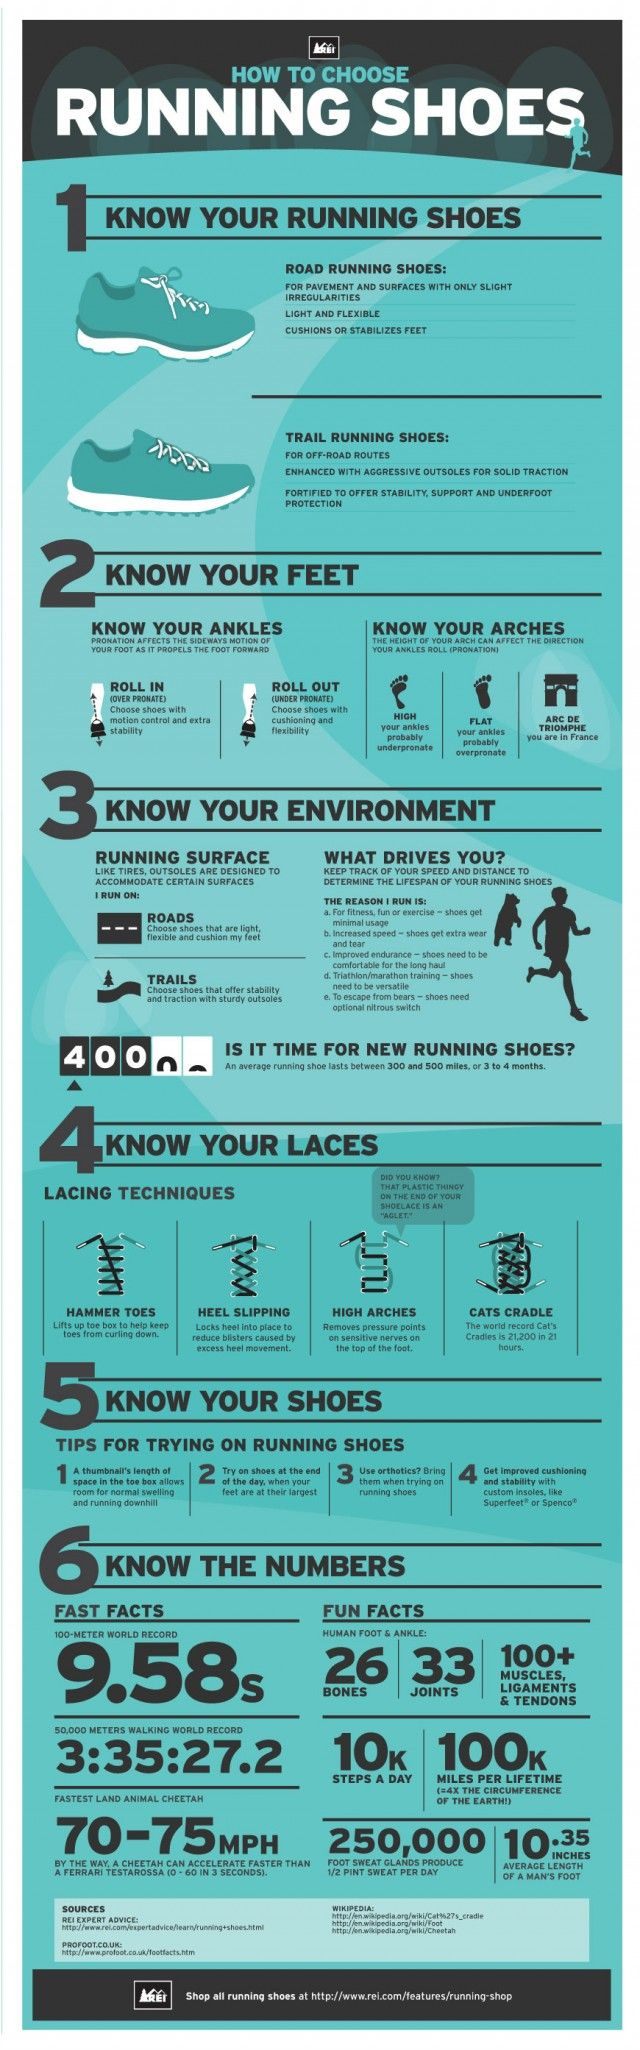 Thankfully, I won't have to make that trip to a fancy running store. Today's infographic provides me with all the knowledge I need when looking for a running shoe that fits my needs. I am personally an under-pronater with high arches who runs on roads. What kind of running style are you?